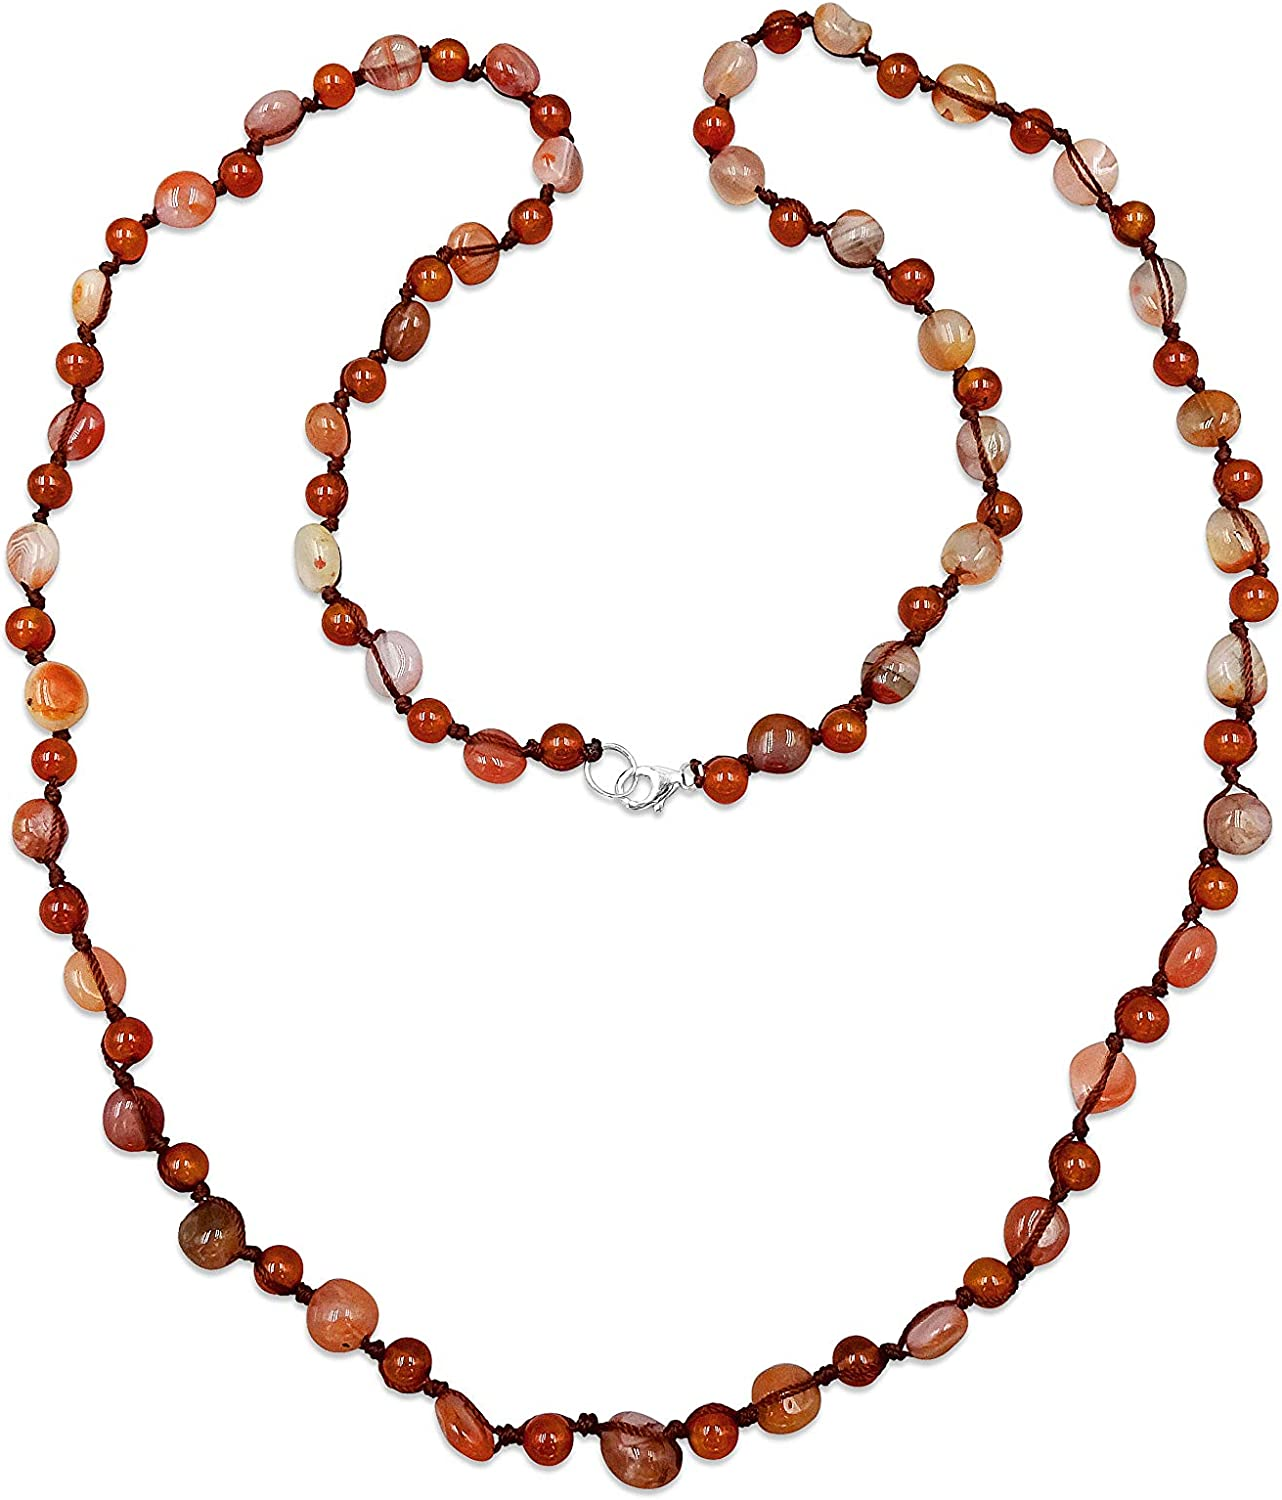 Carnelian long knotted necklace gemstone necklace healing necklace boho womens girls gift